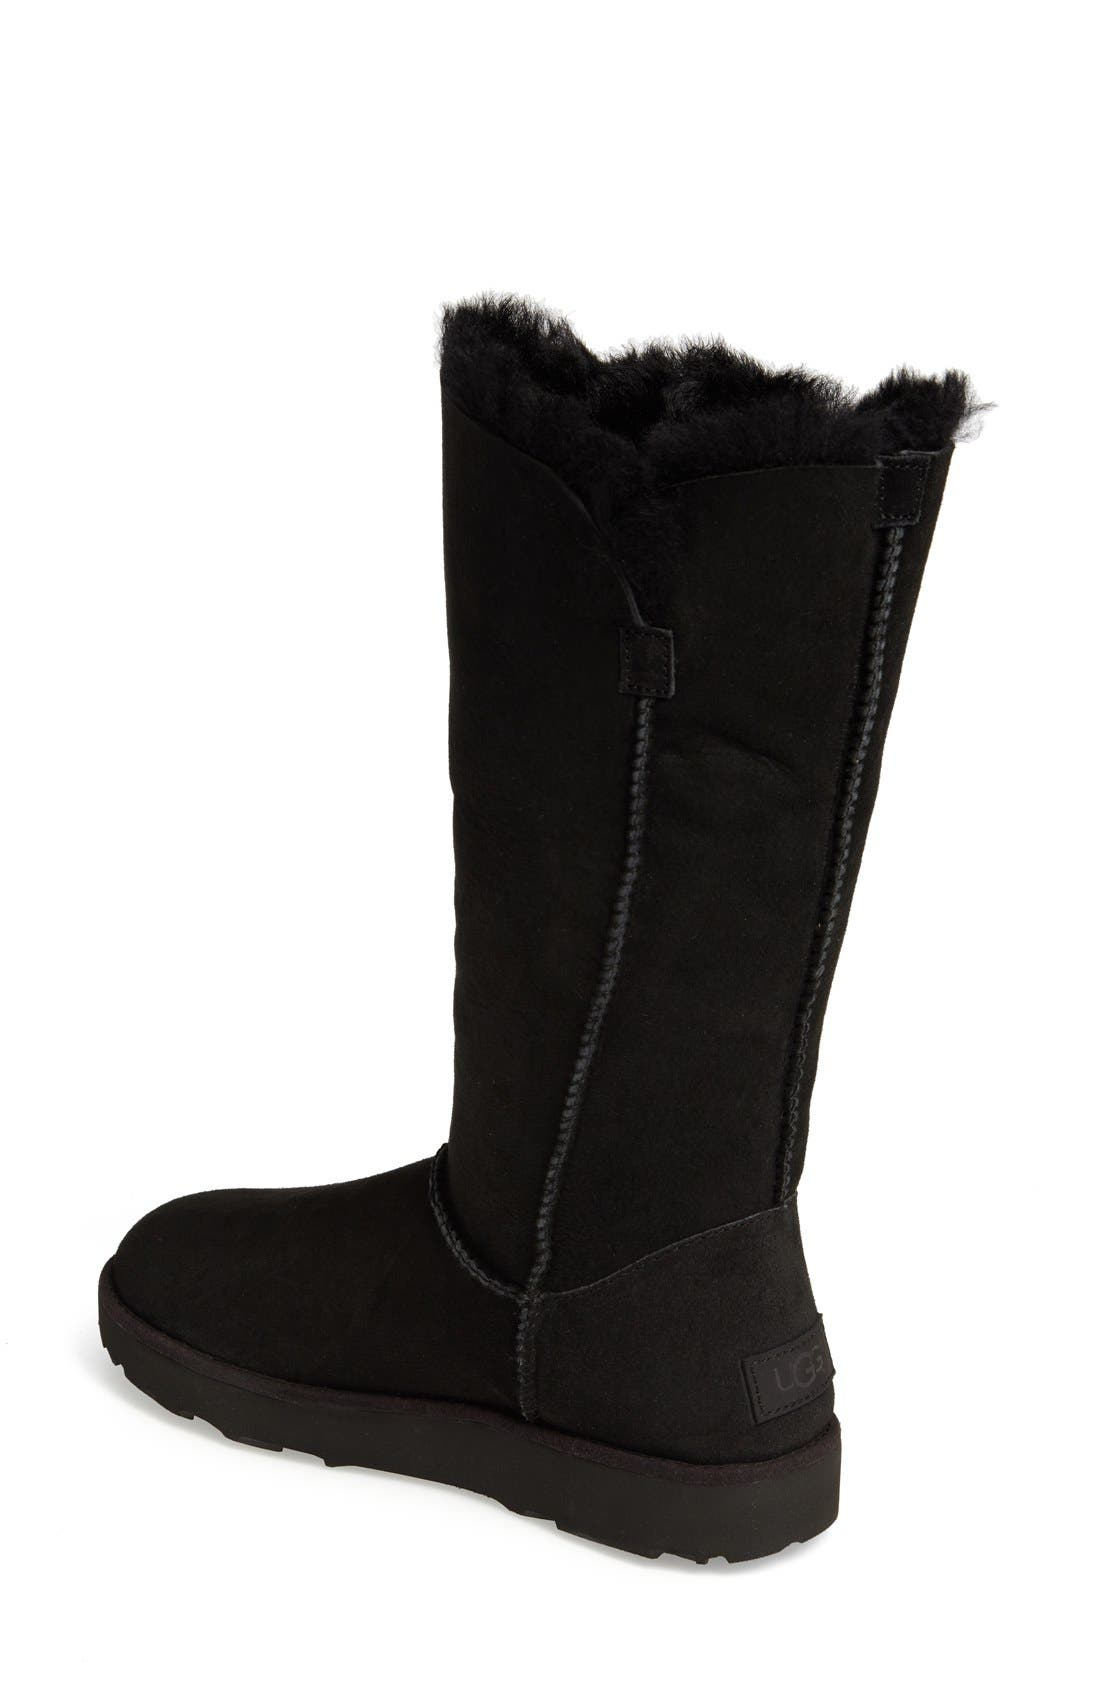 Classic Cuff Tall Boot,                             Alternate thumbnail 2, color,                             Black Suede